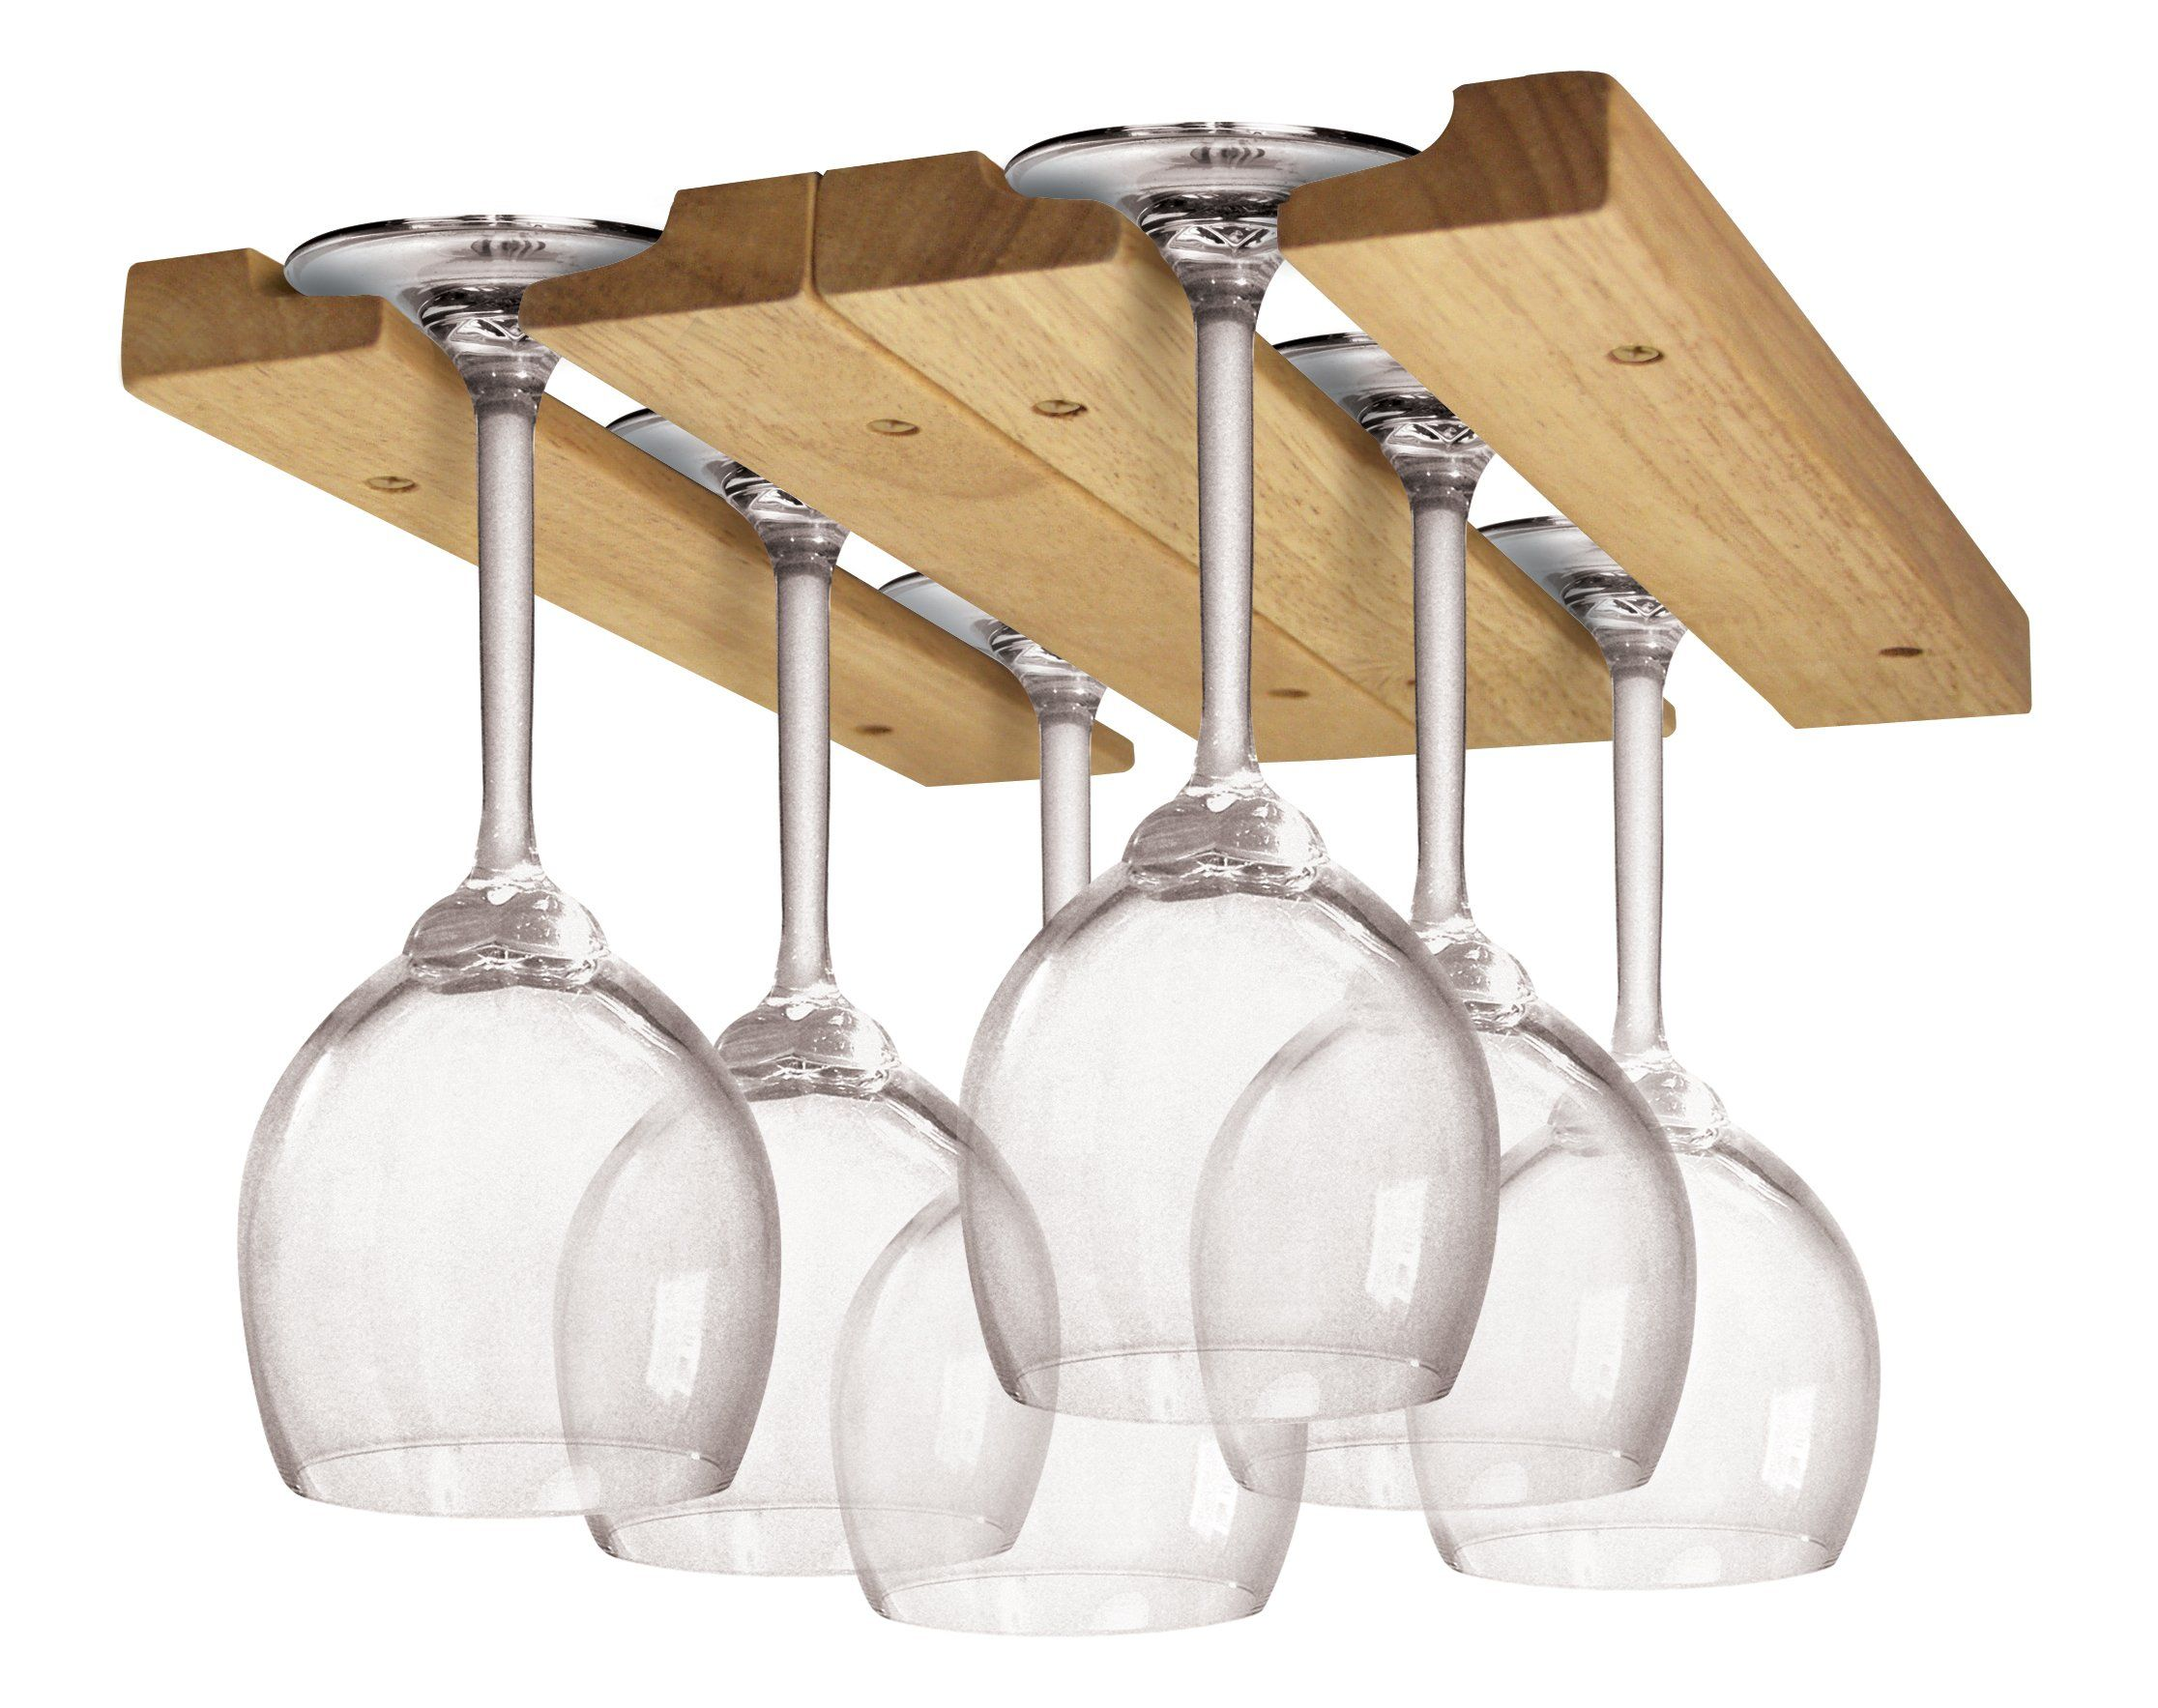 Amazoncom Fox Run Brands Wine Glass Rack, Wood, Adjustable Under